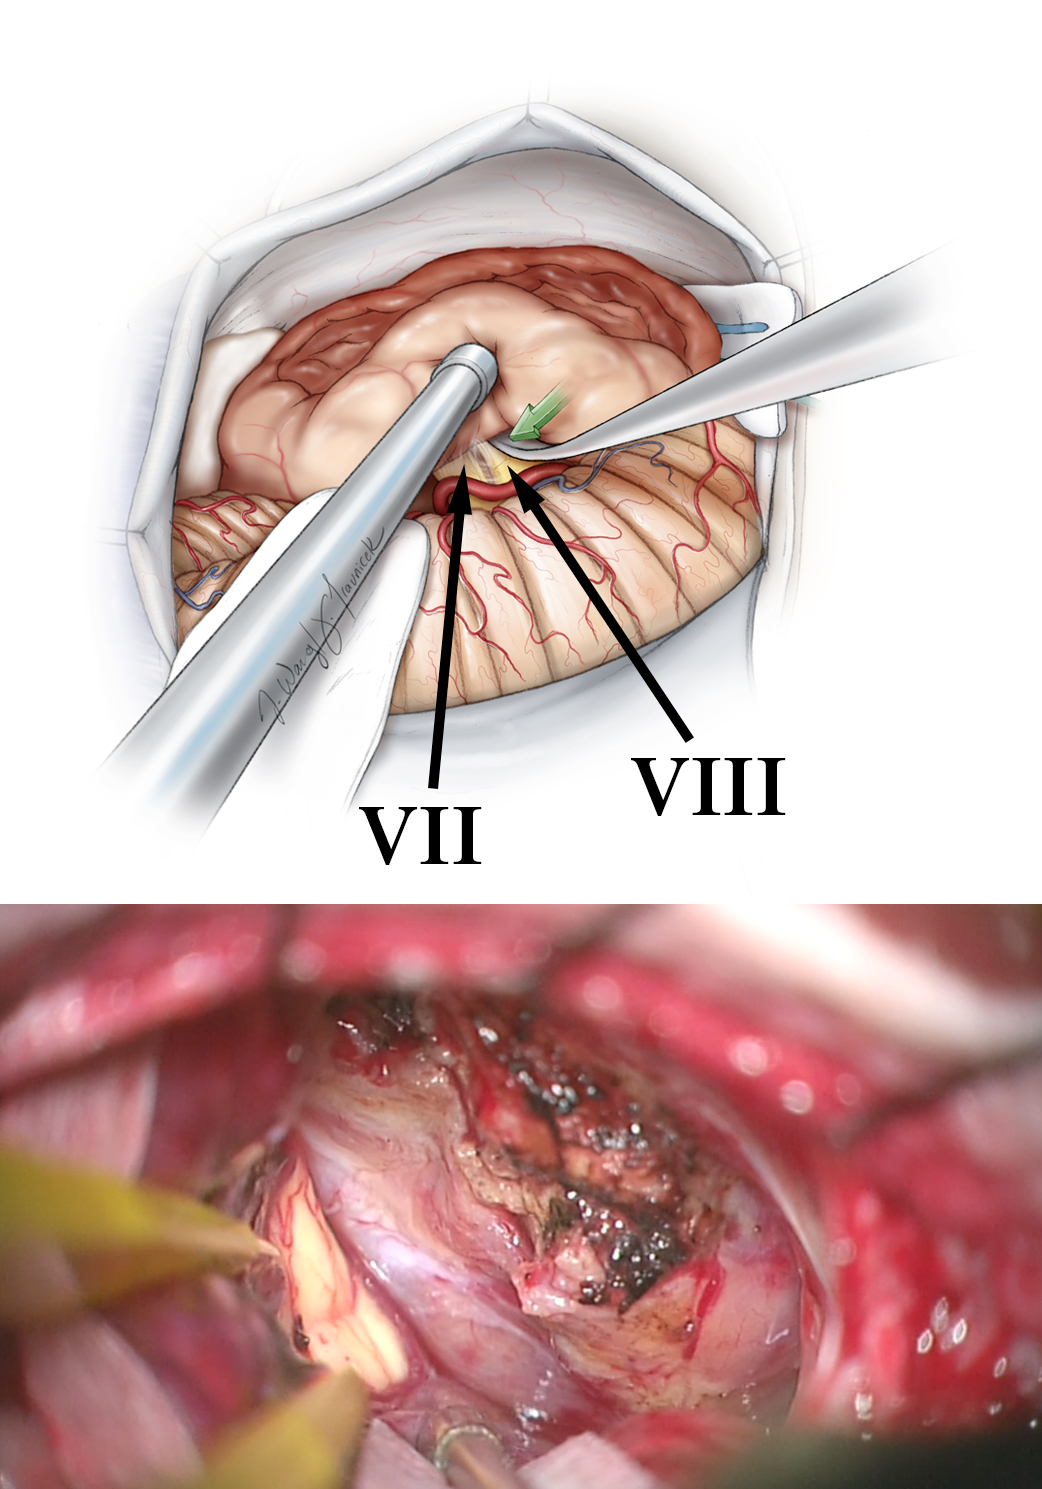 Figure 14: The suction device places the tumor capsule under gentle tension while the nerve is carefully mobilized away from the capsule. Preservation of CN VIII is possible in patients with medium size tumors (top image). Intensive tumor debulking and meticulous hemostasis are hallmarks of efficient VS surgery (bottom image) while the pial planes are preserved.